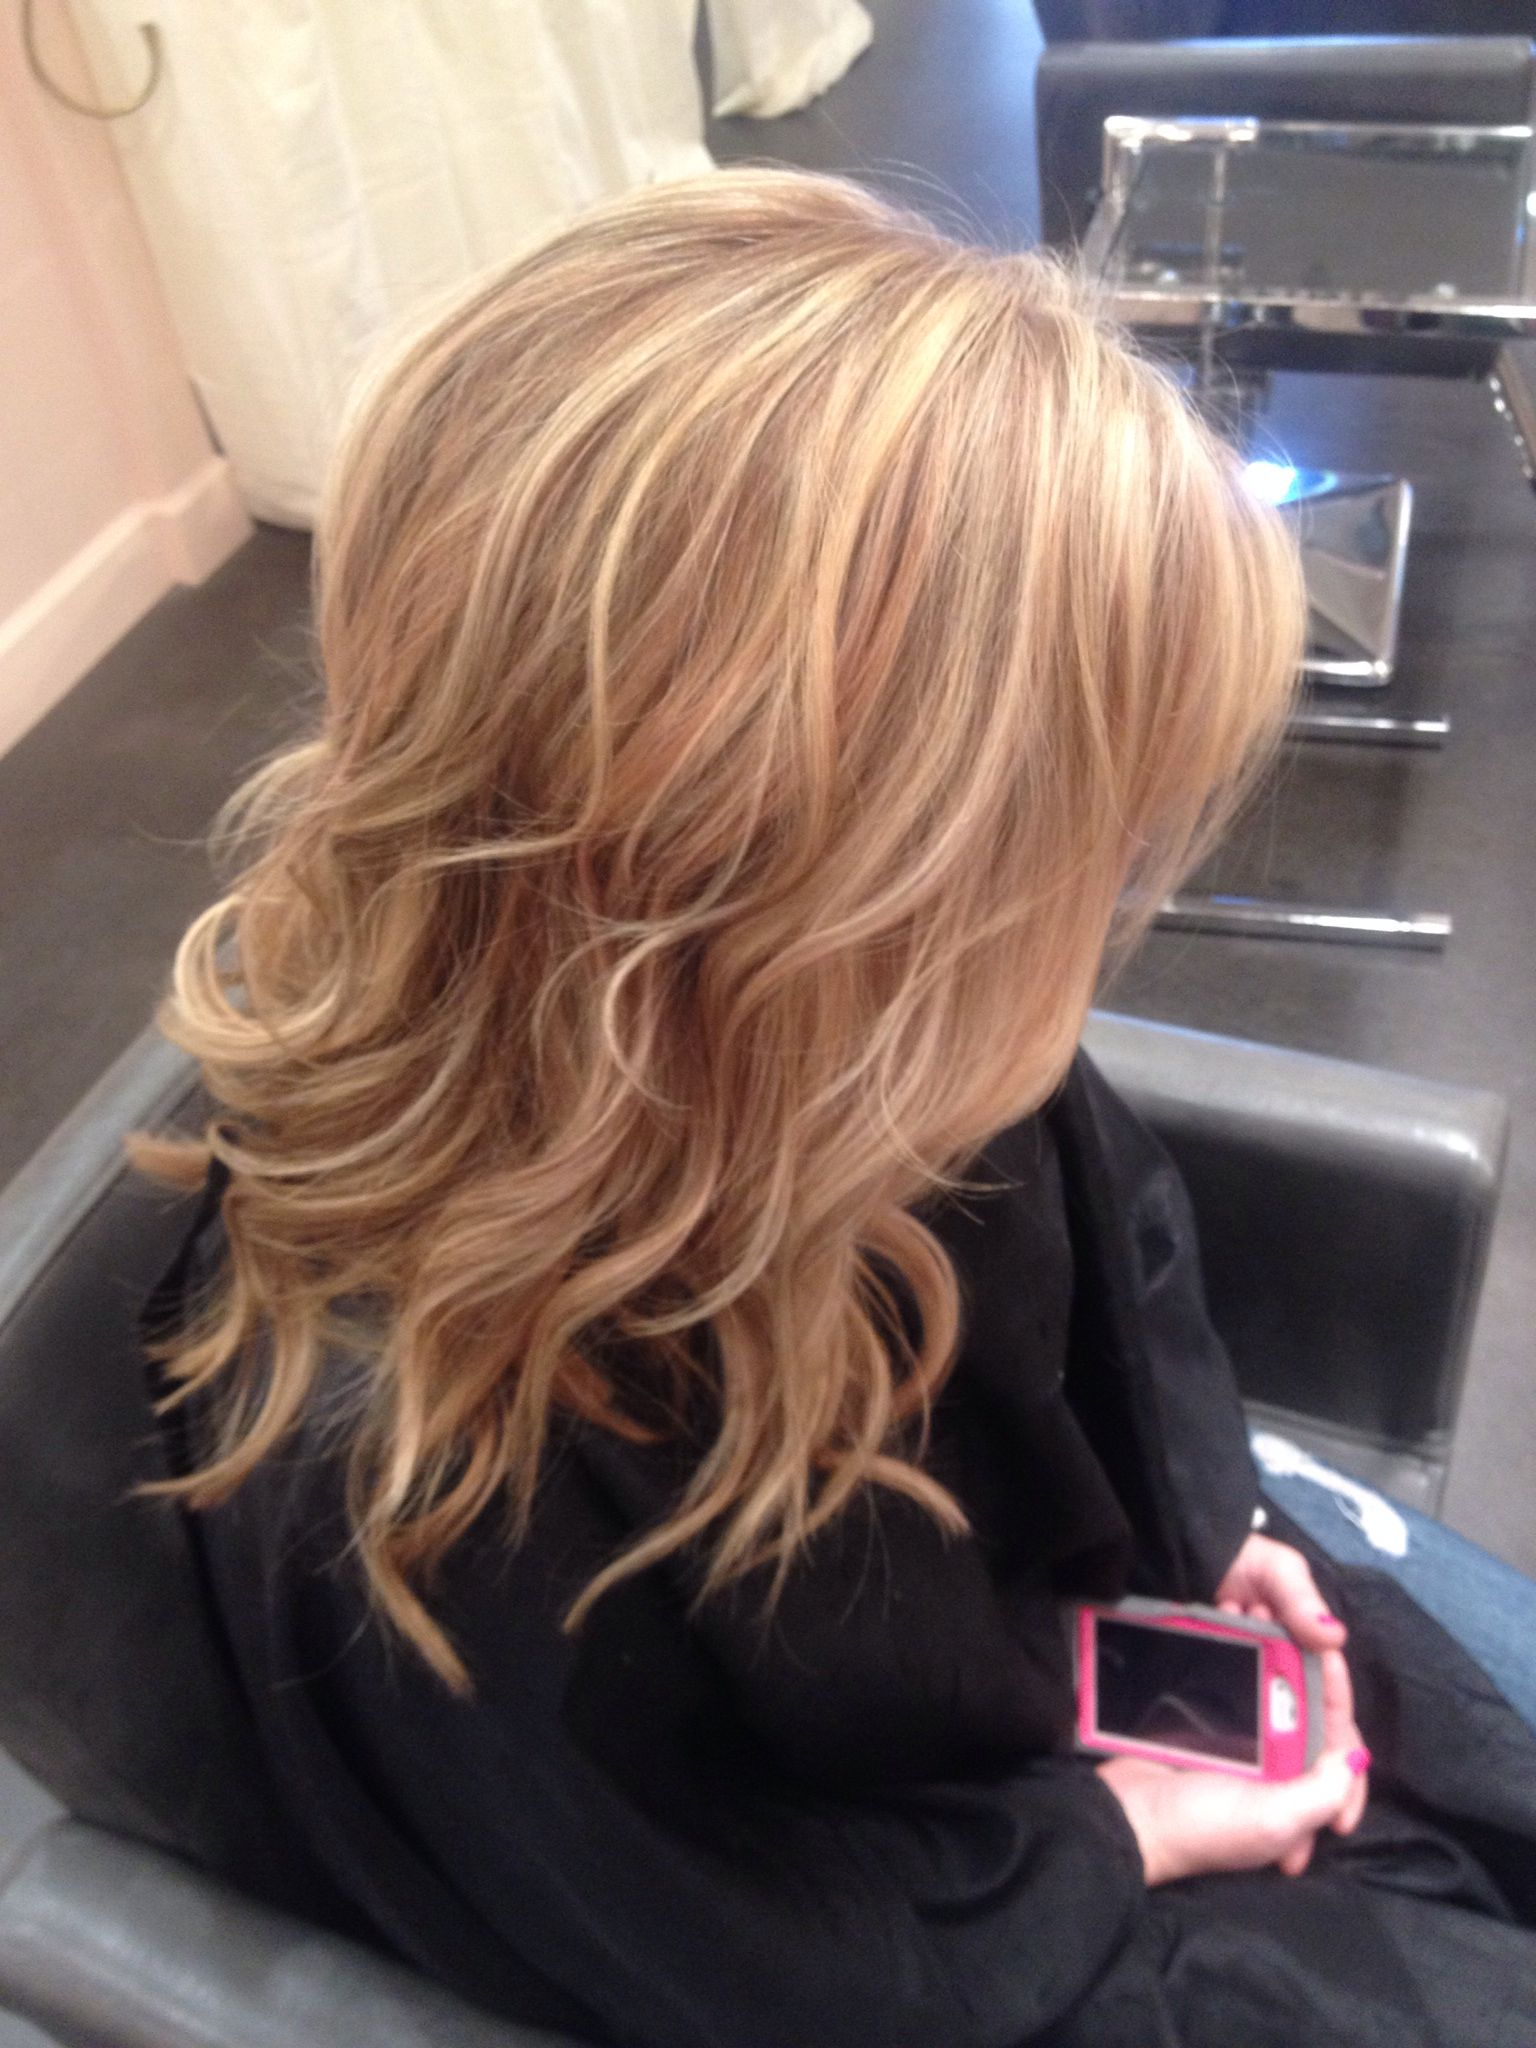 Rose Gold Lowlights To A Perfect Blonde Light Blonde Hair Blonde Hair With Highlights Blonde Highlights